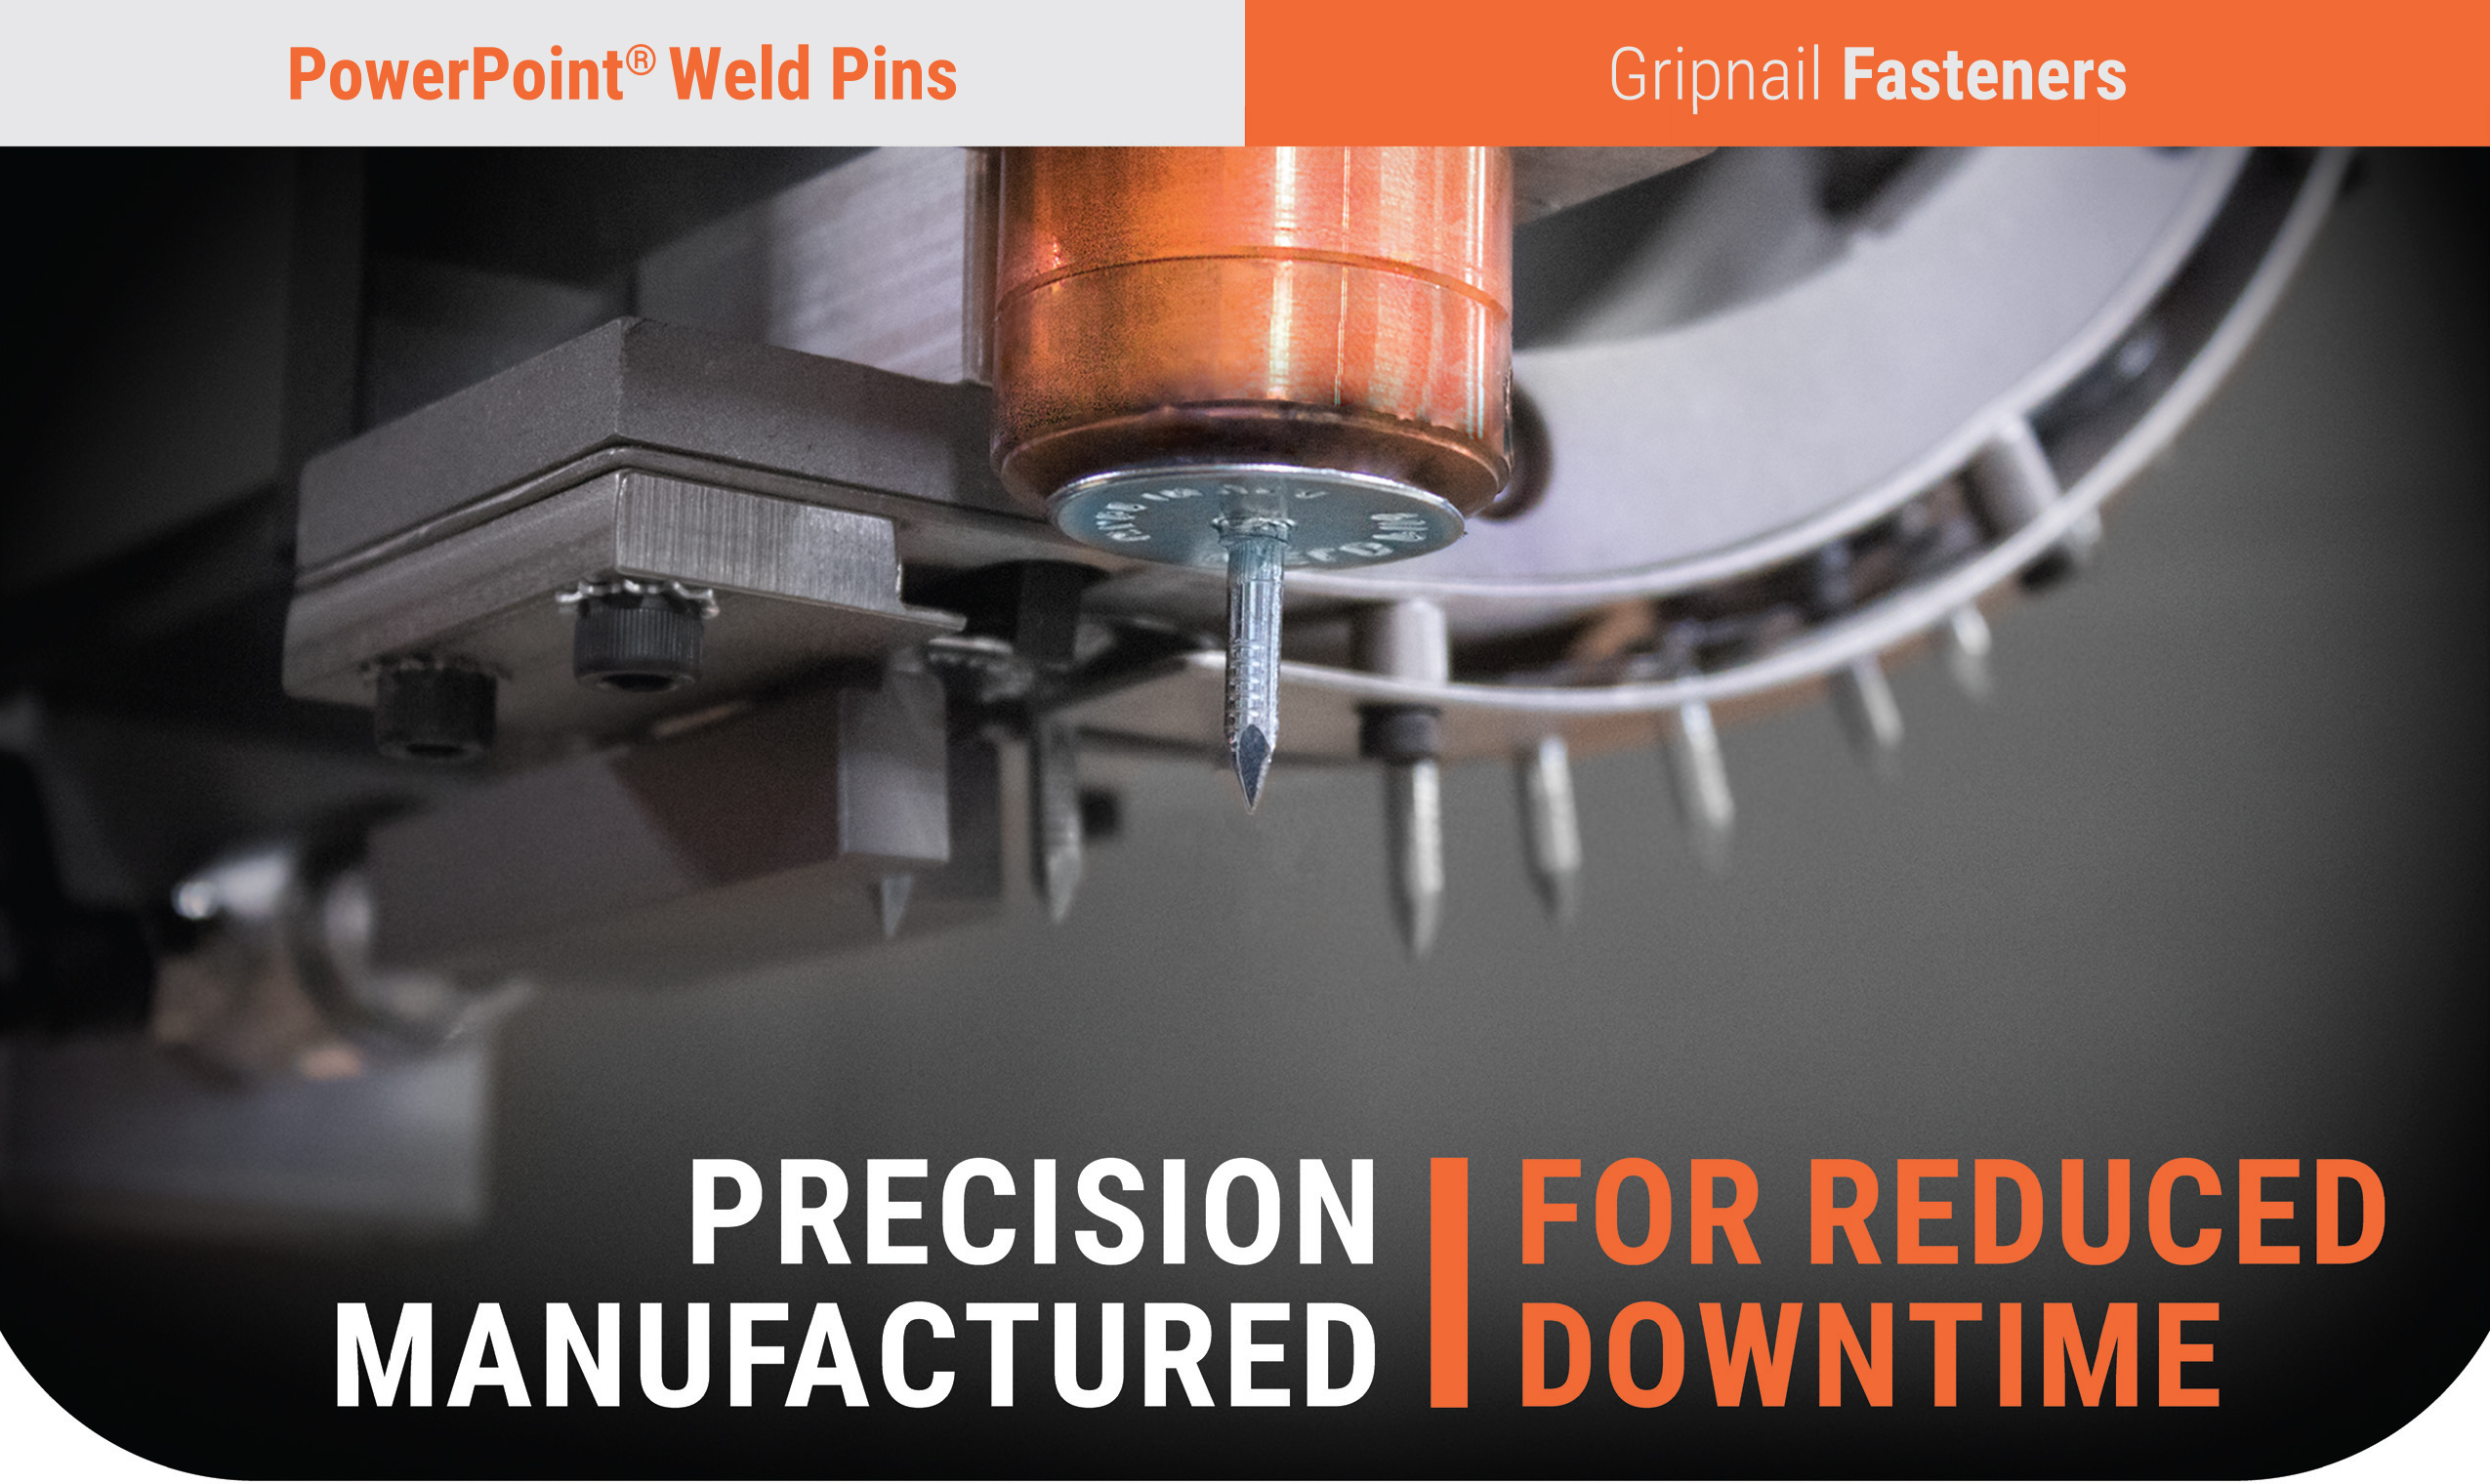 PowerPoint Weld Pin Main